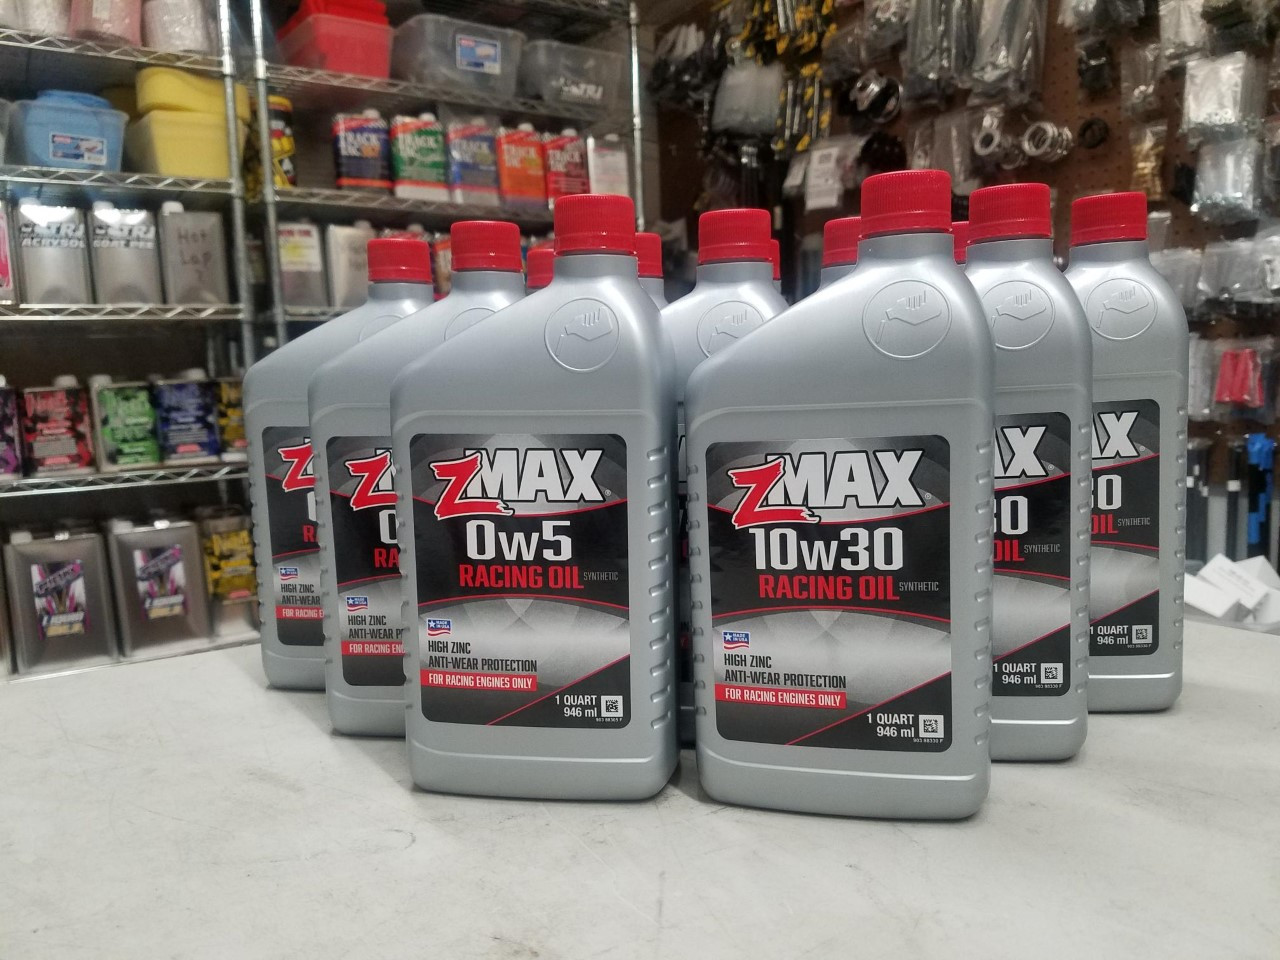 zMAX 20w50 Racing Oil - Quart